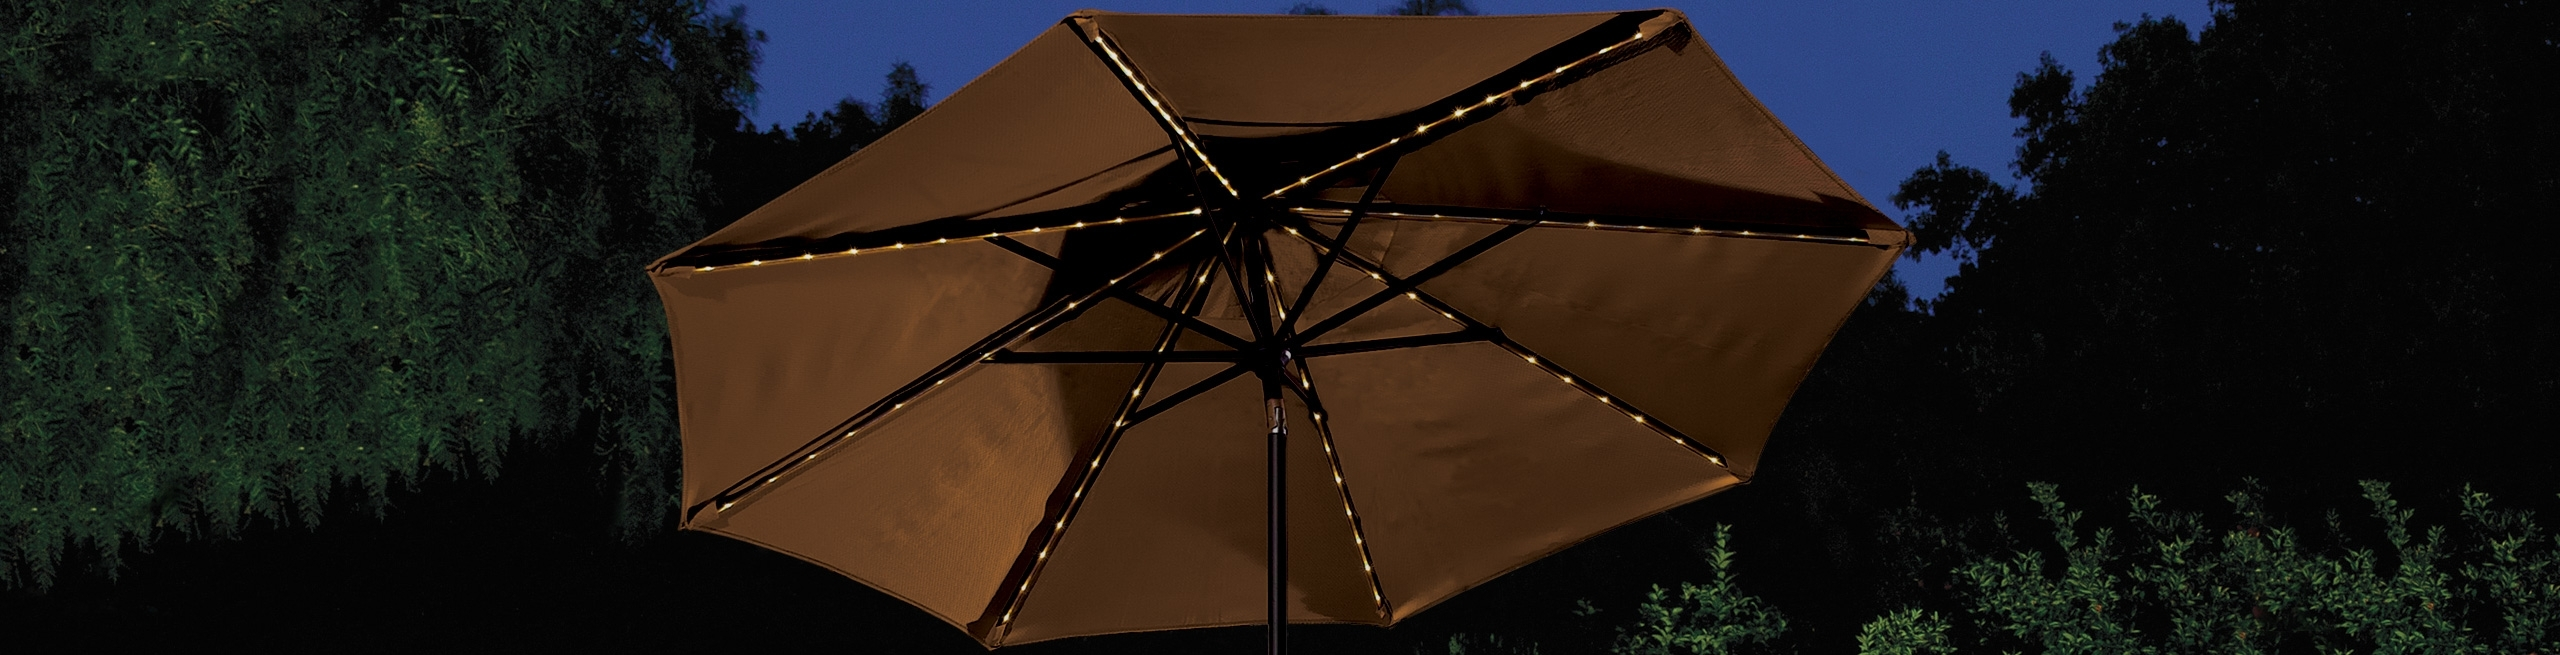 Treasure Garden: Treasure Garden Umbrellas (View 16 of 20)